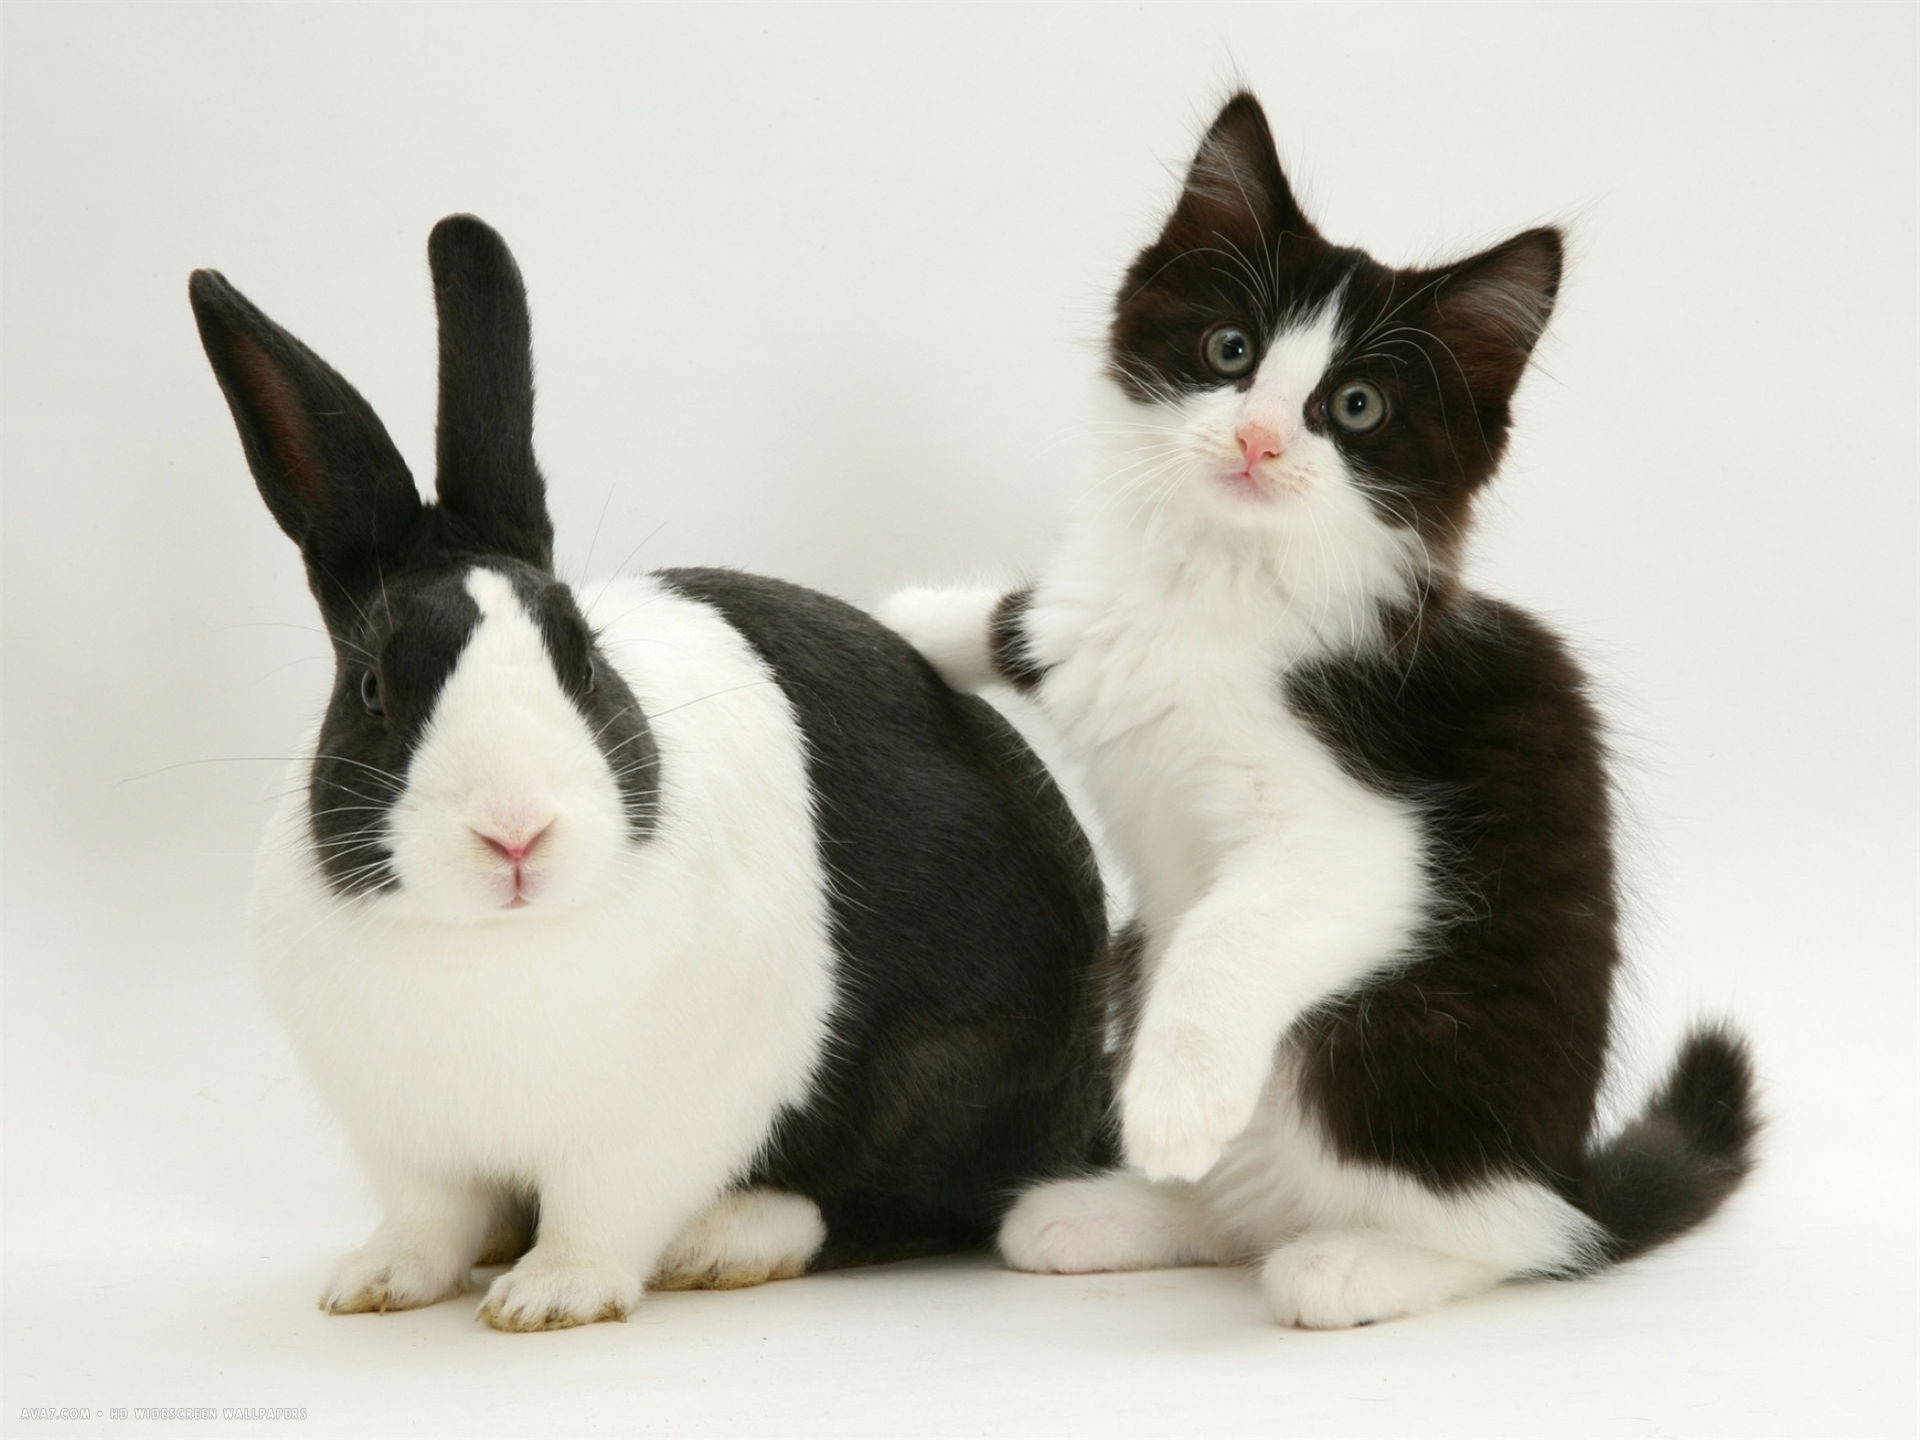 1920x1440 black dutch rabbit with black and white kitten desktop wallpaper